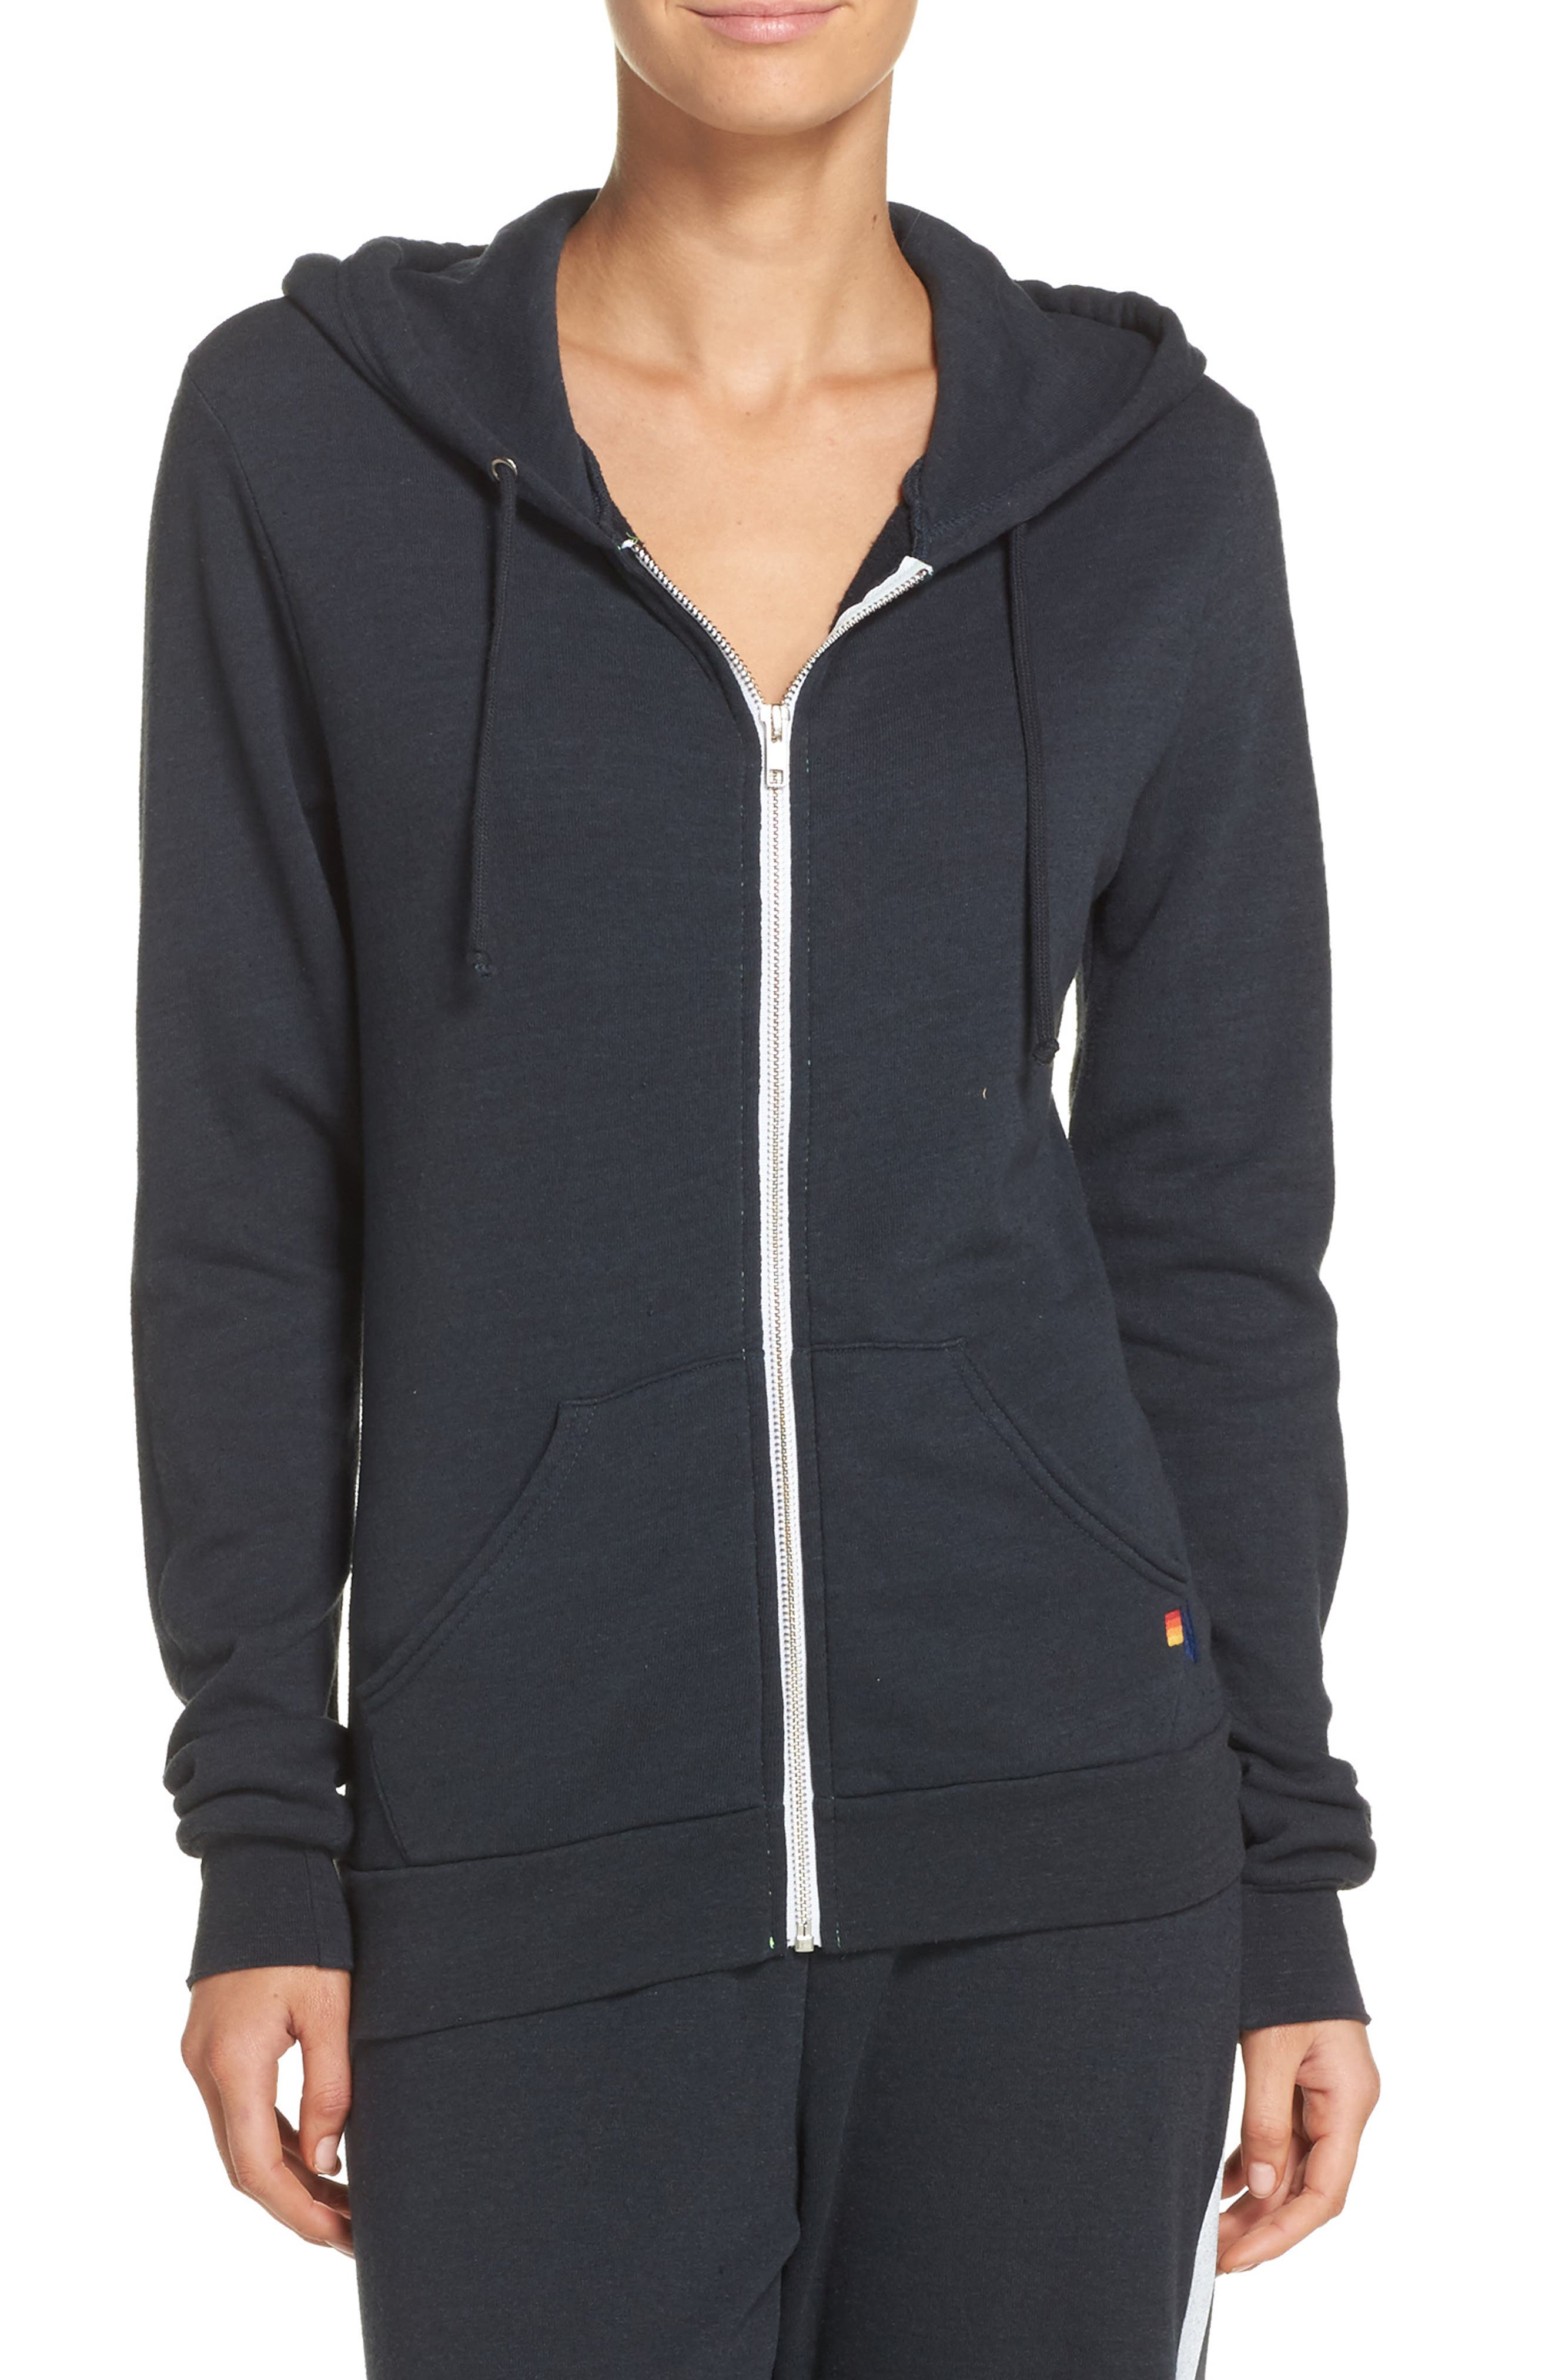 Bolt Zip Hoodie,                             Main thumbnail 1, color,                             CHARCOAL